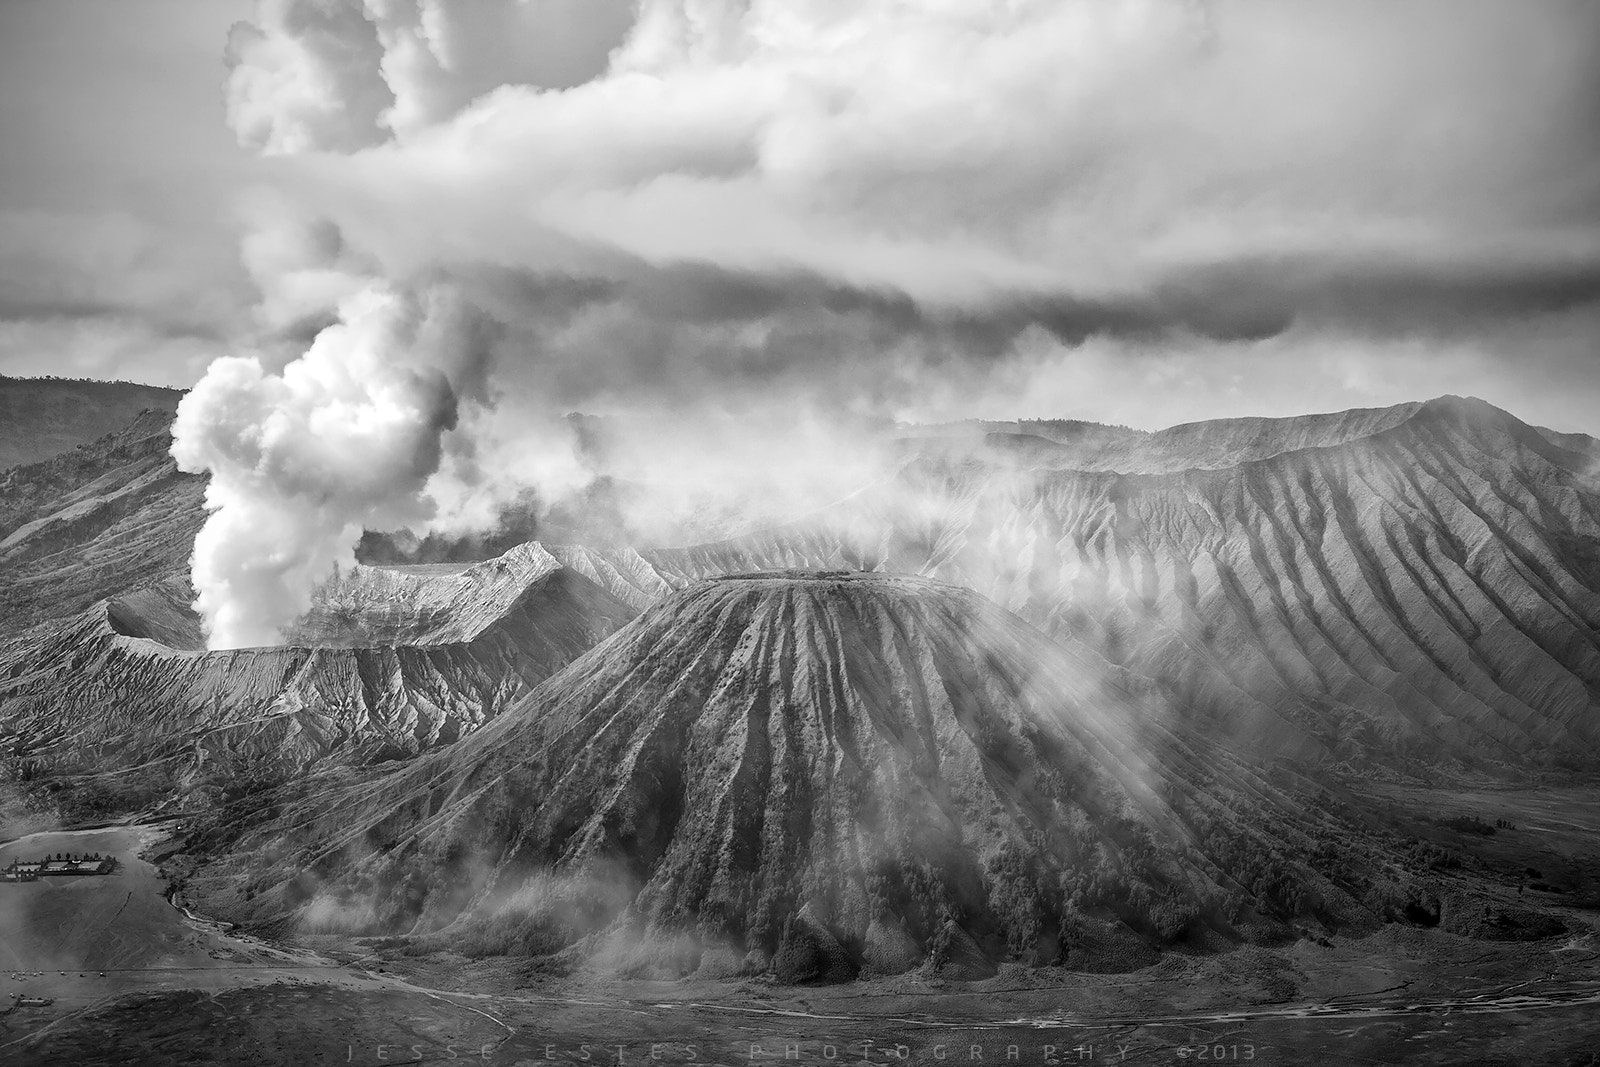 Photograph Mount Bromo - East Java, Indonesia by Jesse Estes on 500px